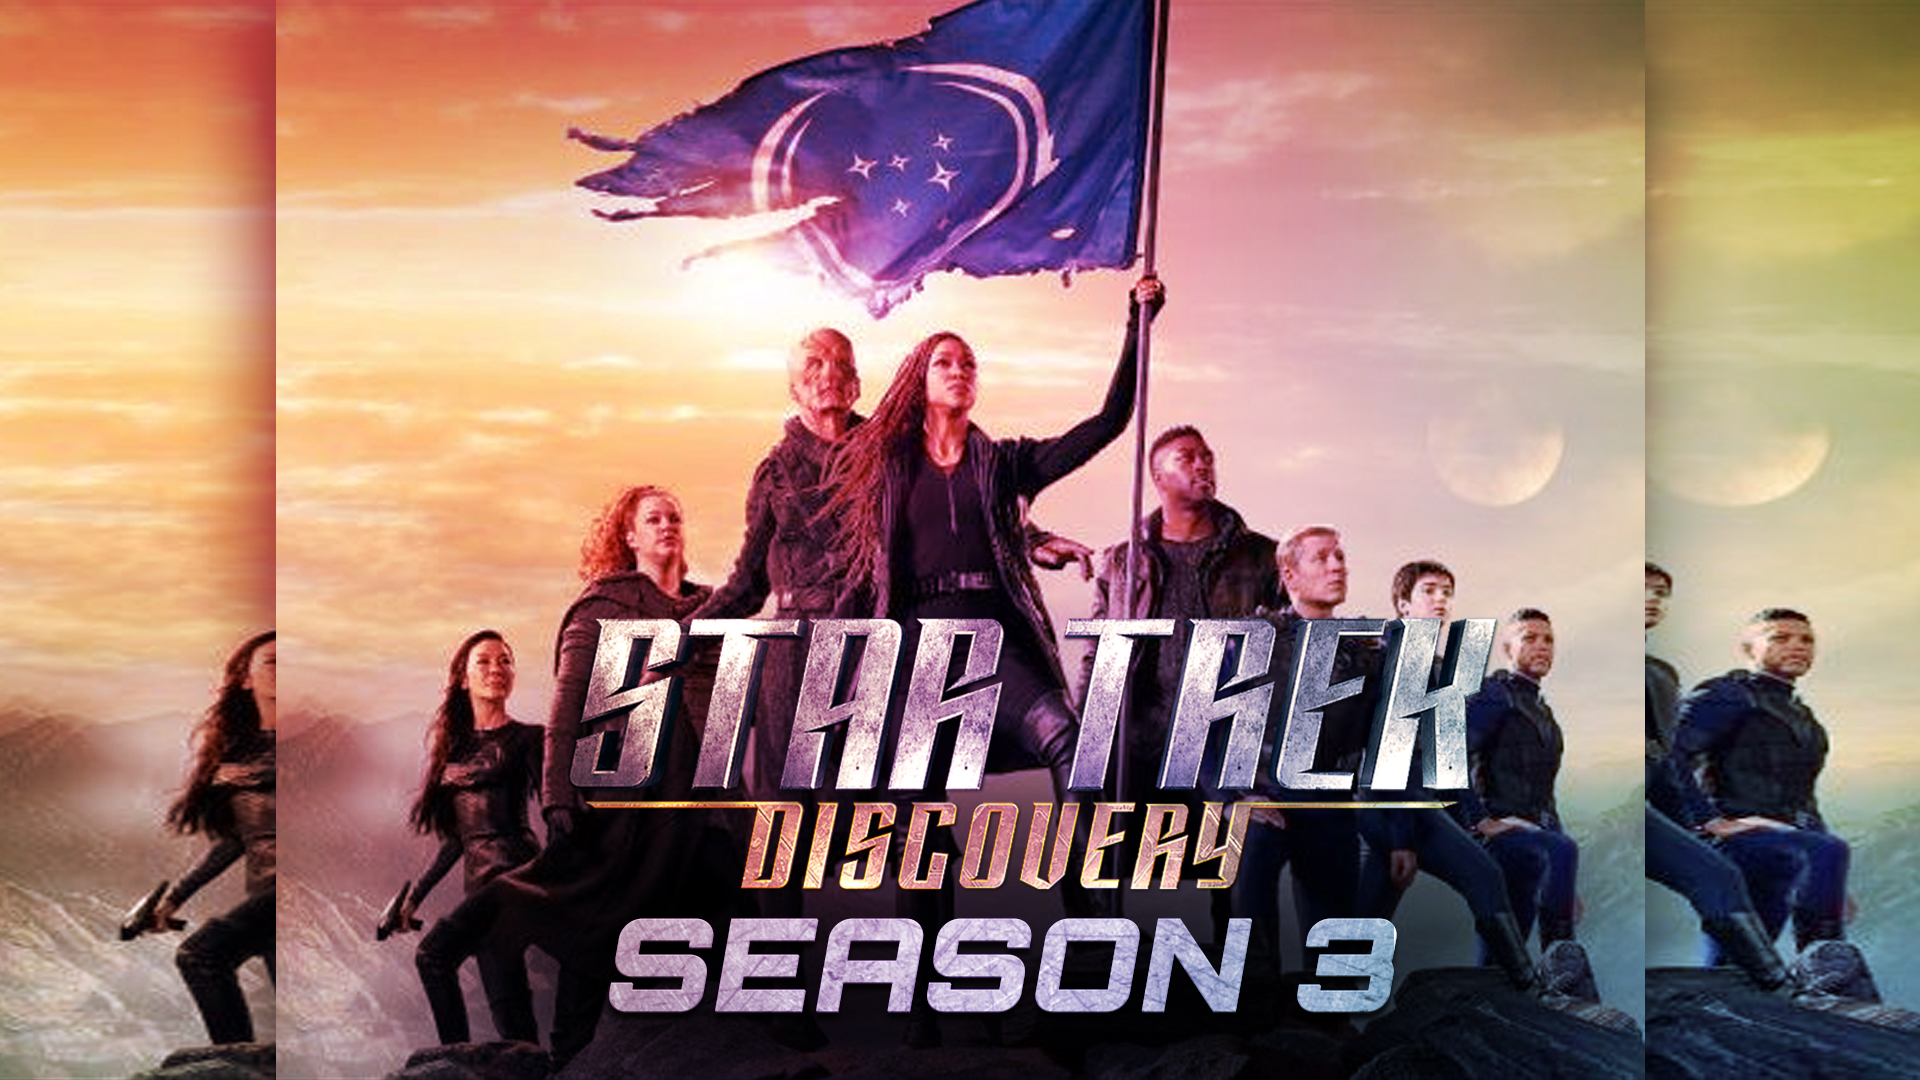 Star Trek Discovery Season 3 Release Date Delay due to COVID-19